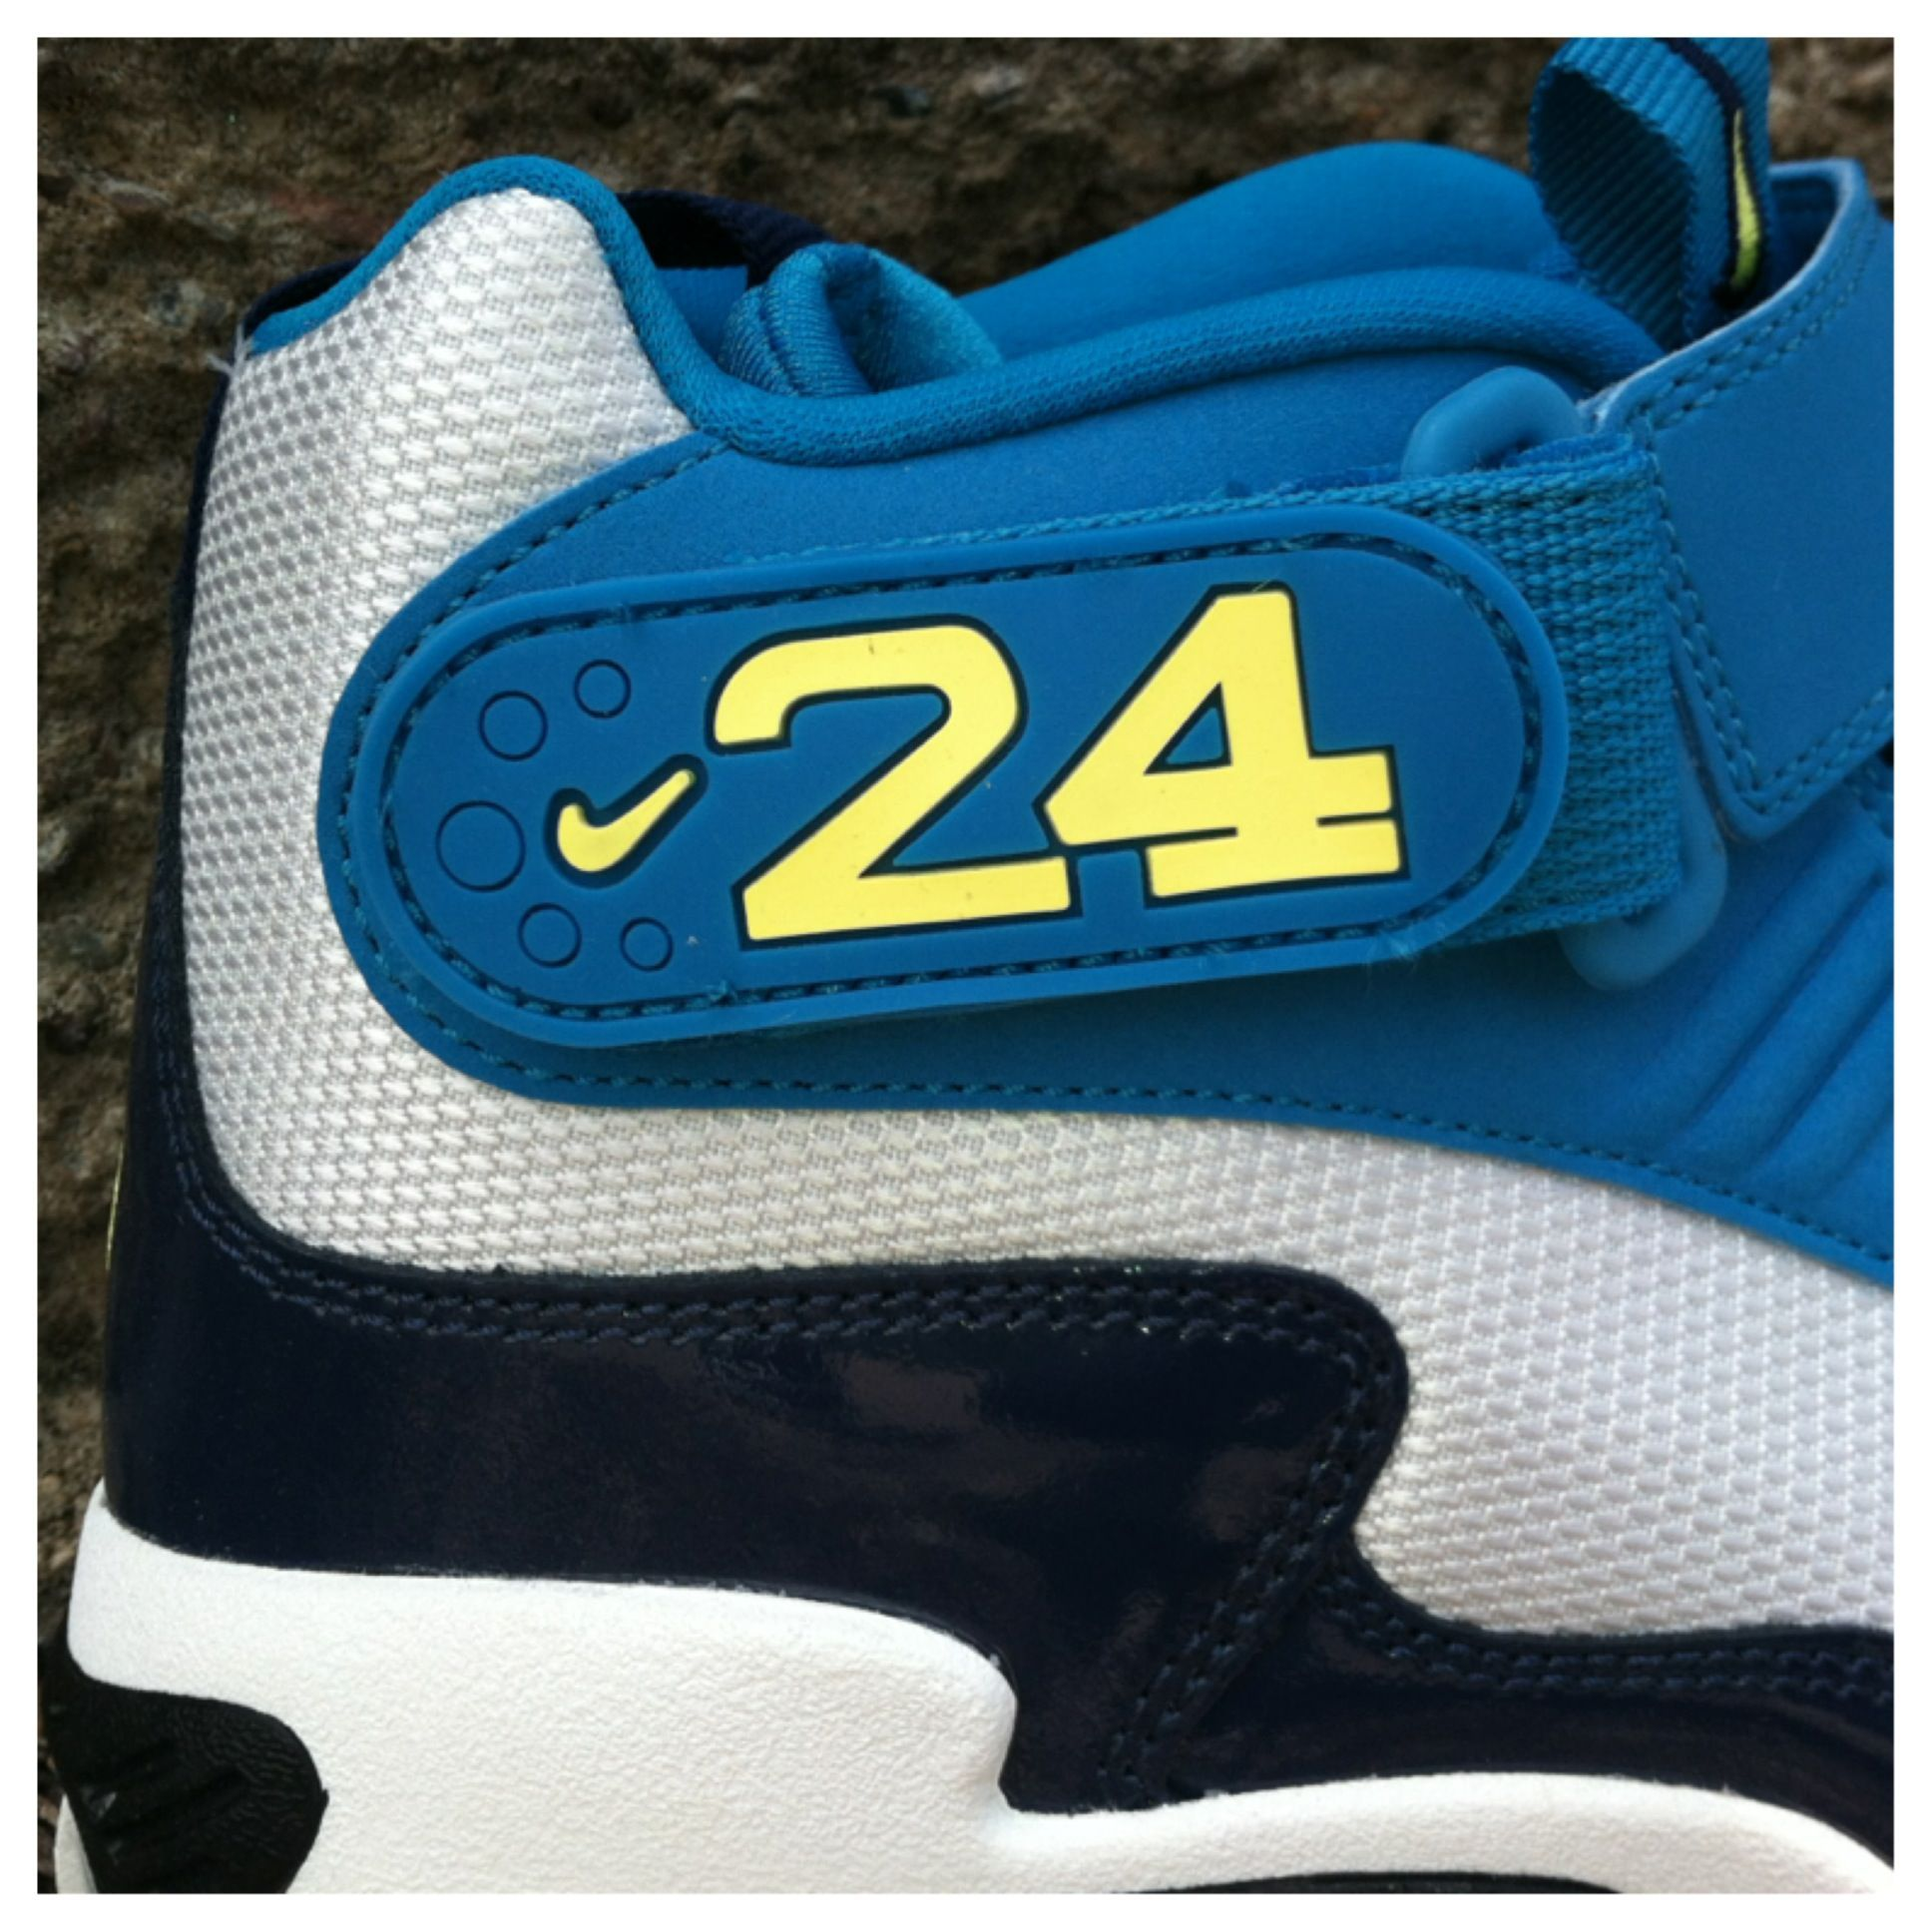 new arrival b85a3 af3f1 ... authentic release report get a detailed look at the new nike air  griffey max 1.